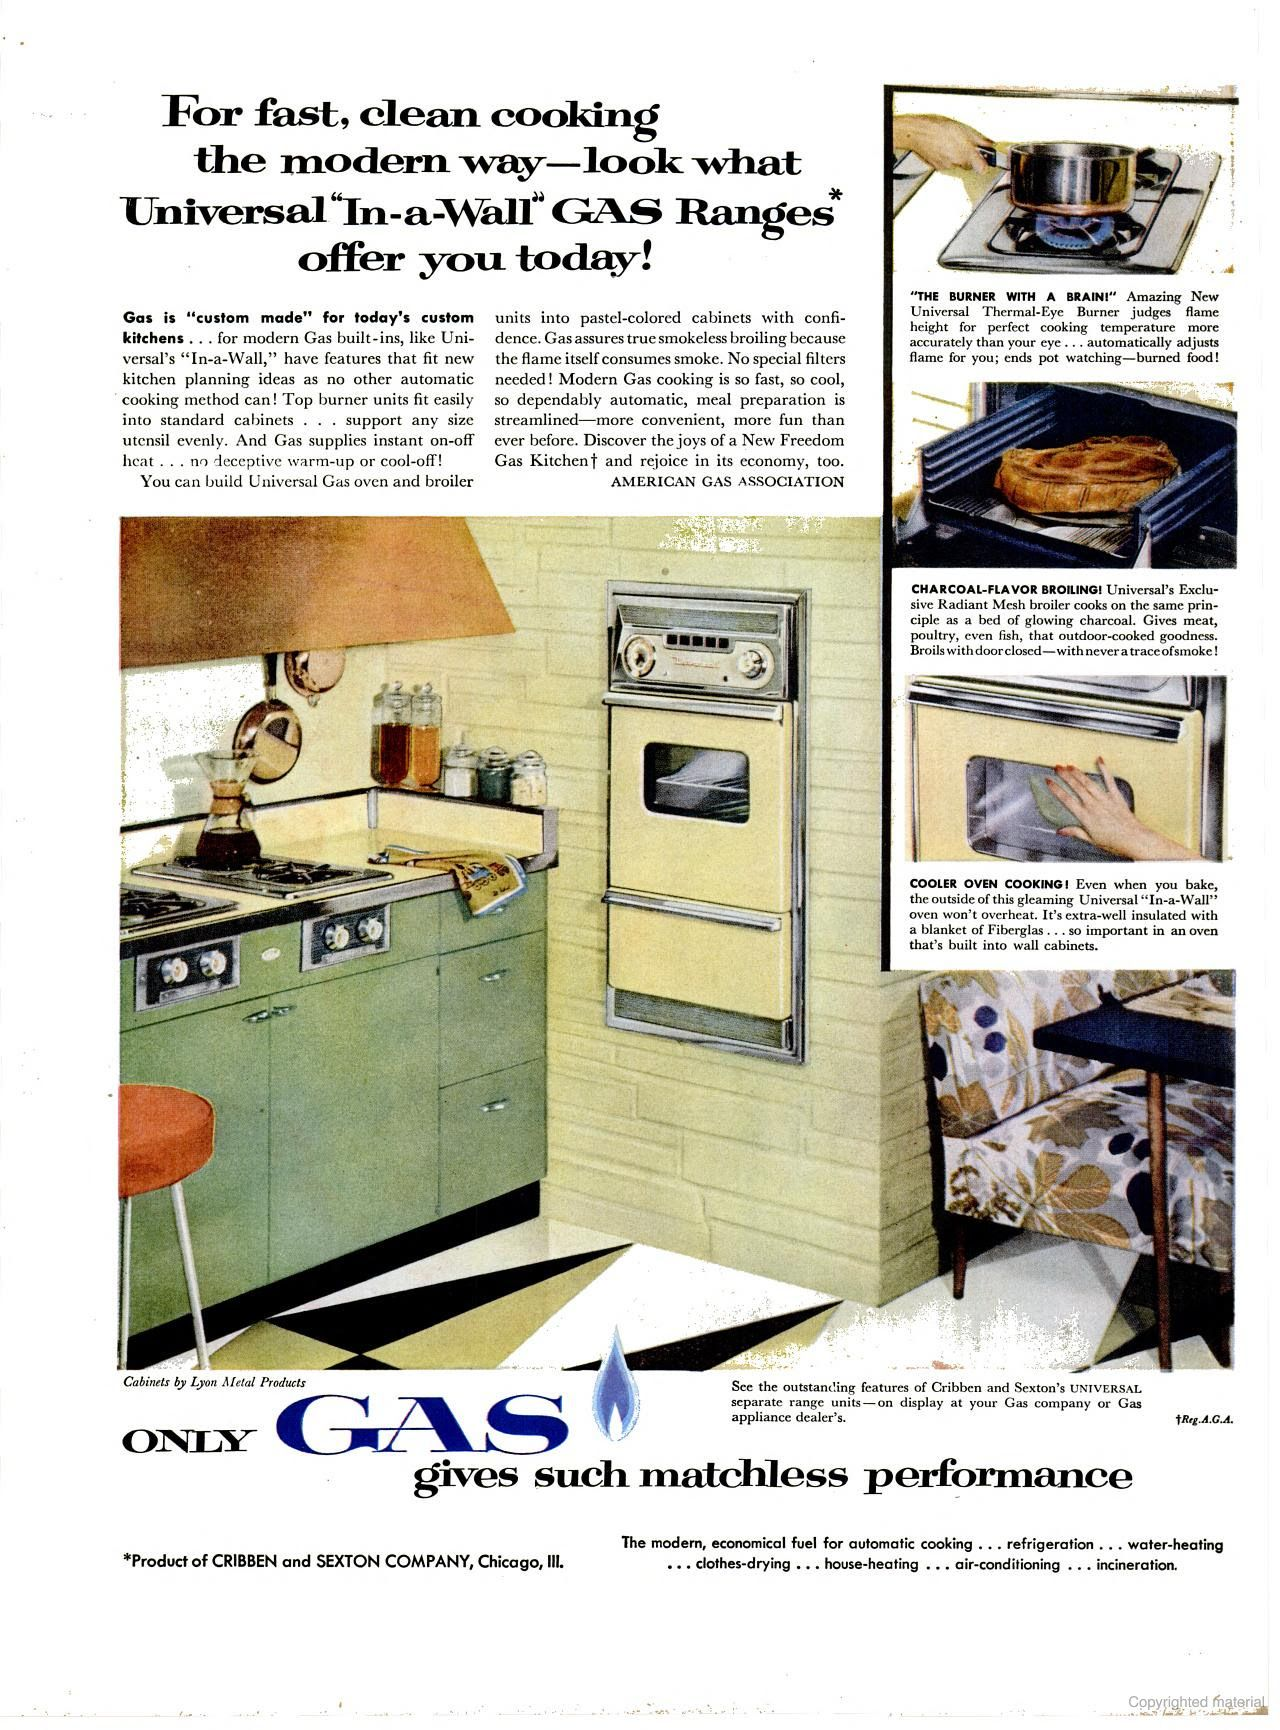 Pin by Chris G on Vintage Appliance Ads | Pinterest | Vintage appliances